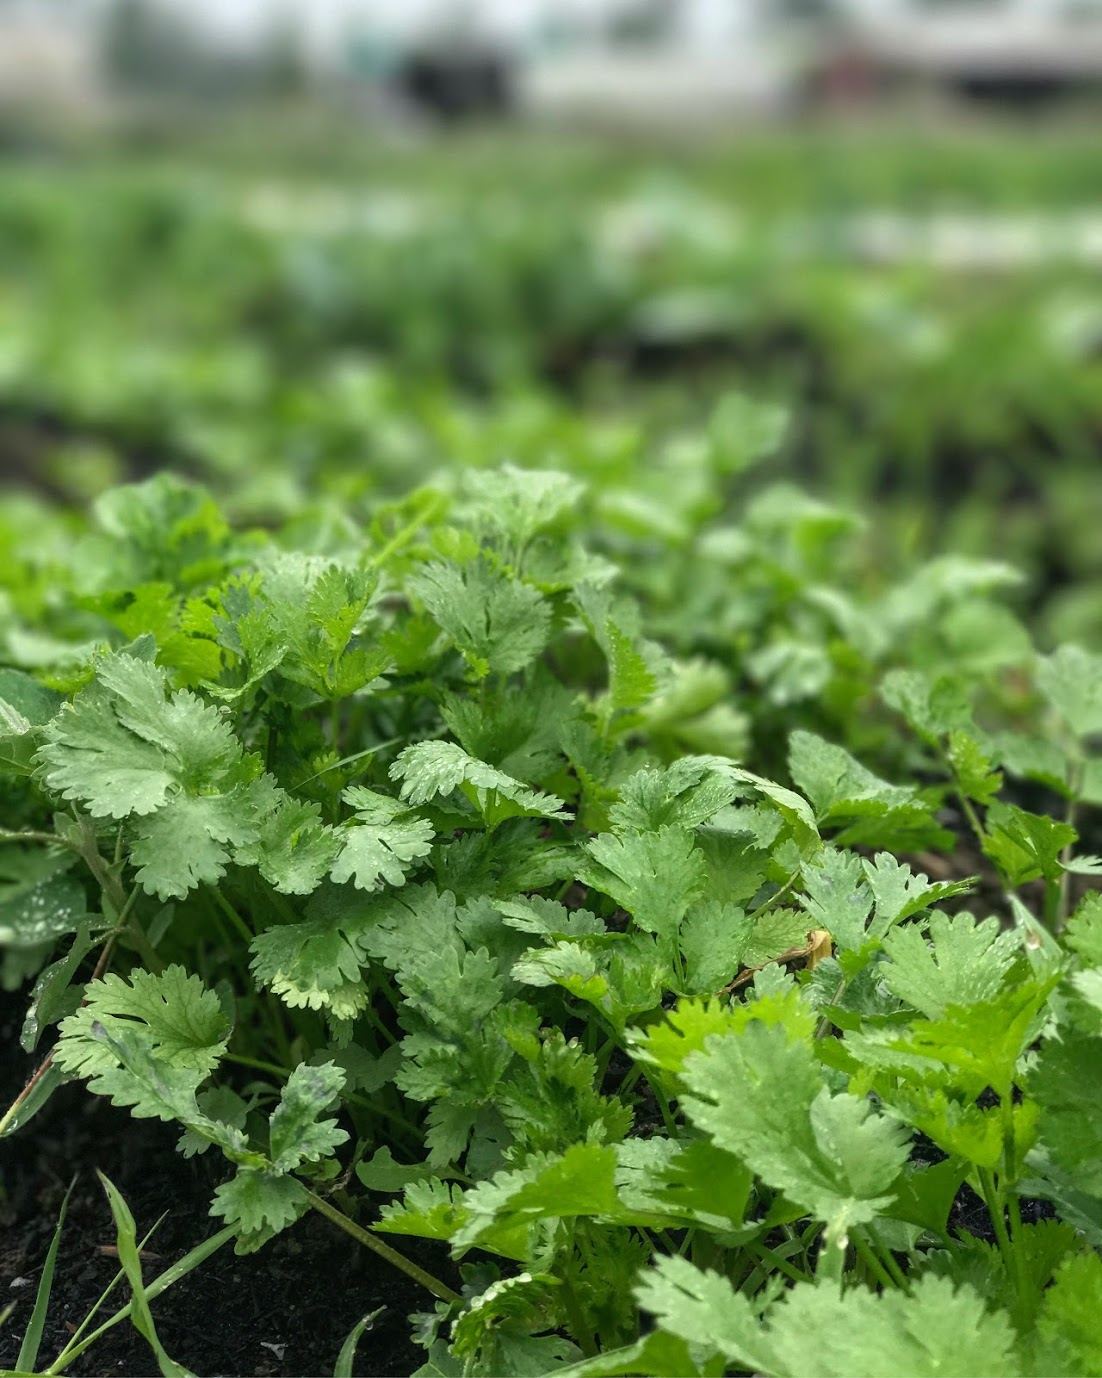 Cilantro - A popular herb throughout the world for it's versatile, fresh flavor. Add to salsas, soups, salads, or rub on meat.